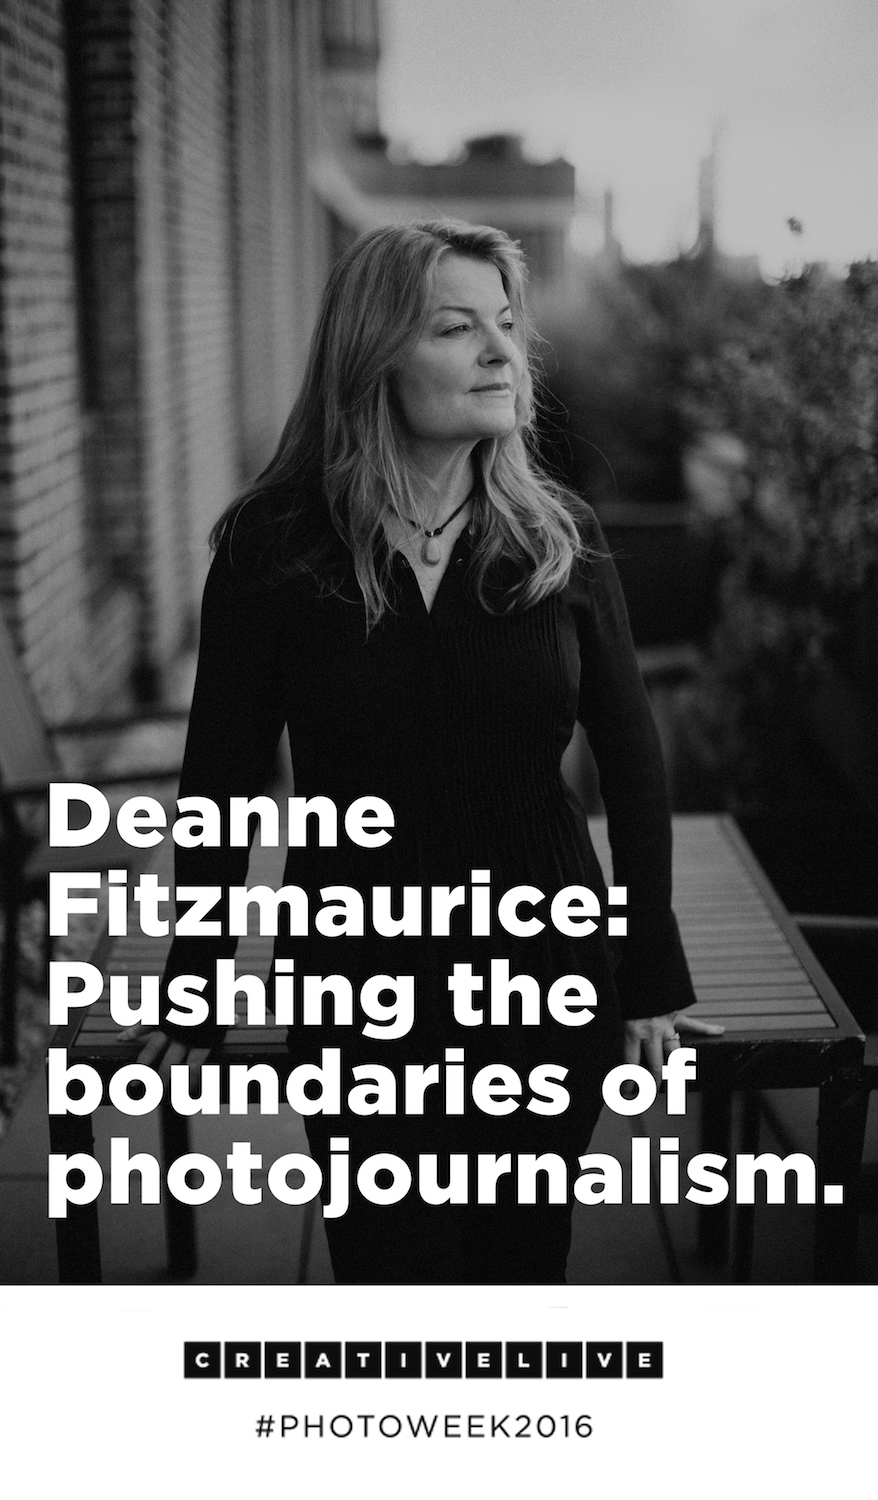 Deanne Fitzmaurice is a Pulitzer Prize winning photojournalist and has some incredible insights into photography, being objective, and telling stories. Check out this blog post that tells how she continues to push the boundaries in photojournalism.